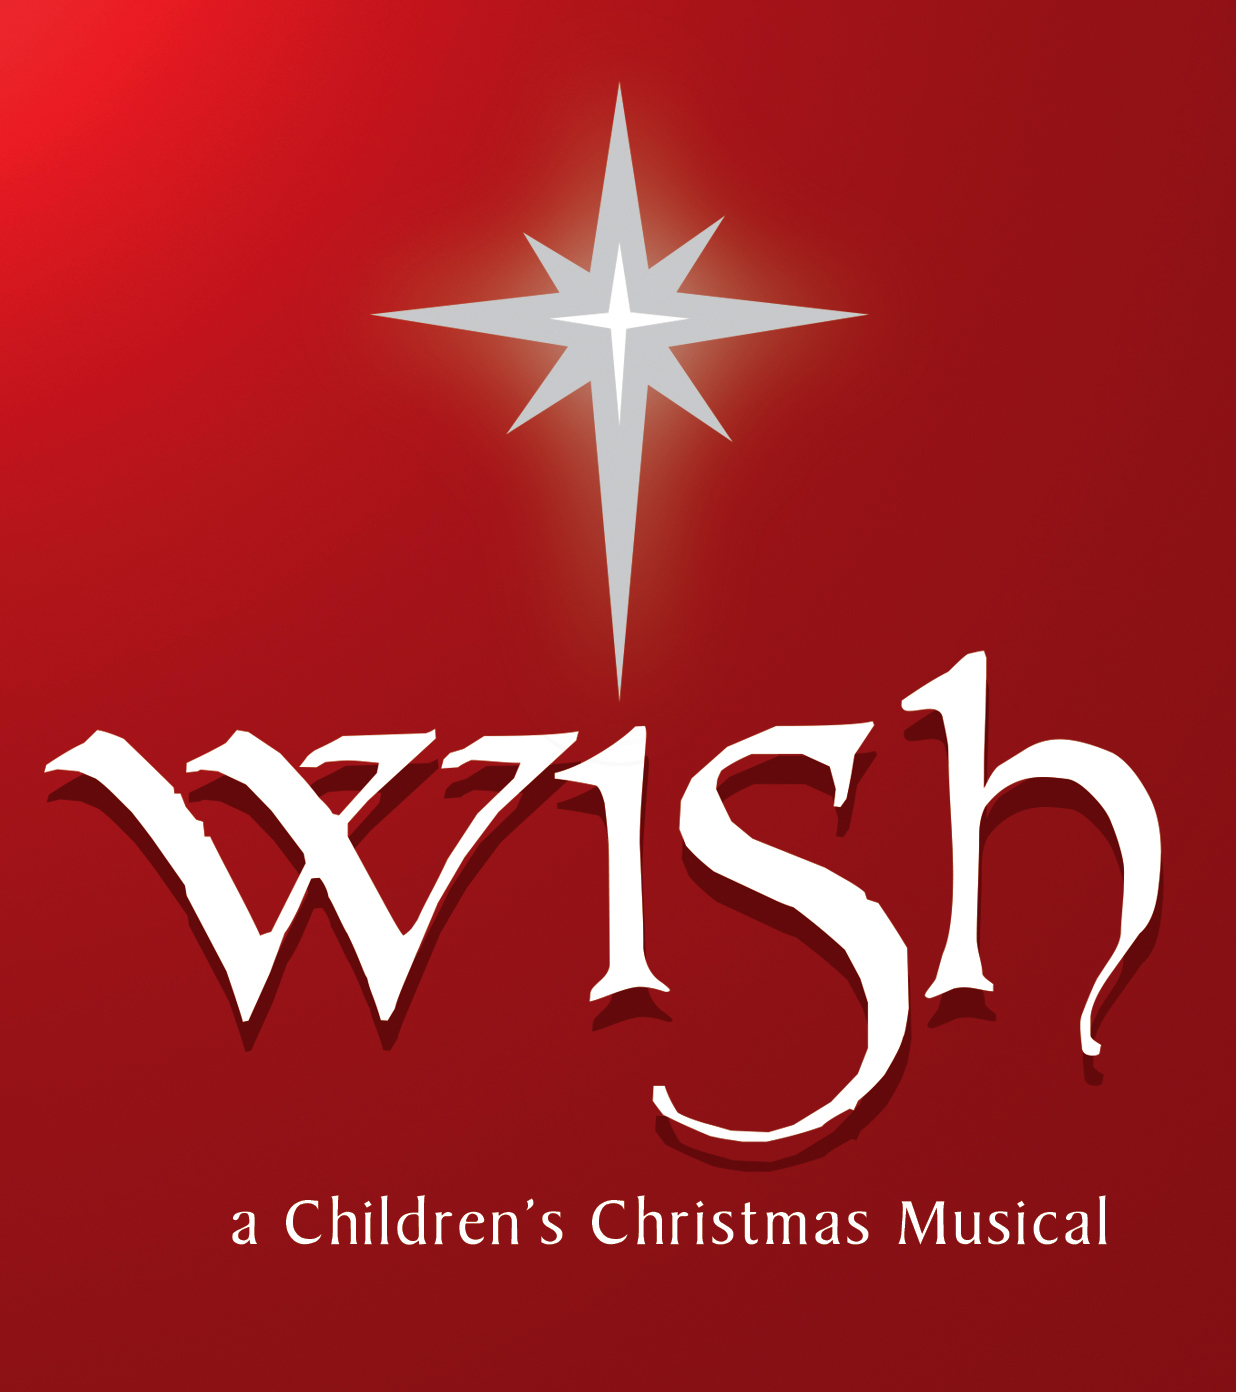 Wish: A Children's Christmas Benefit Musical